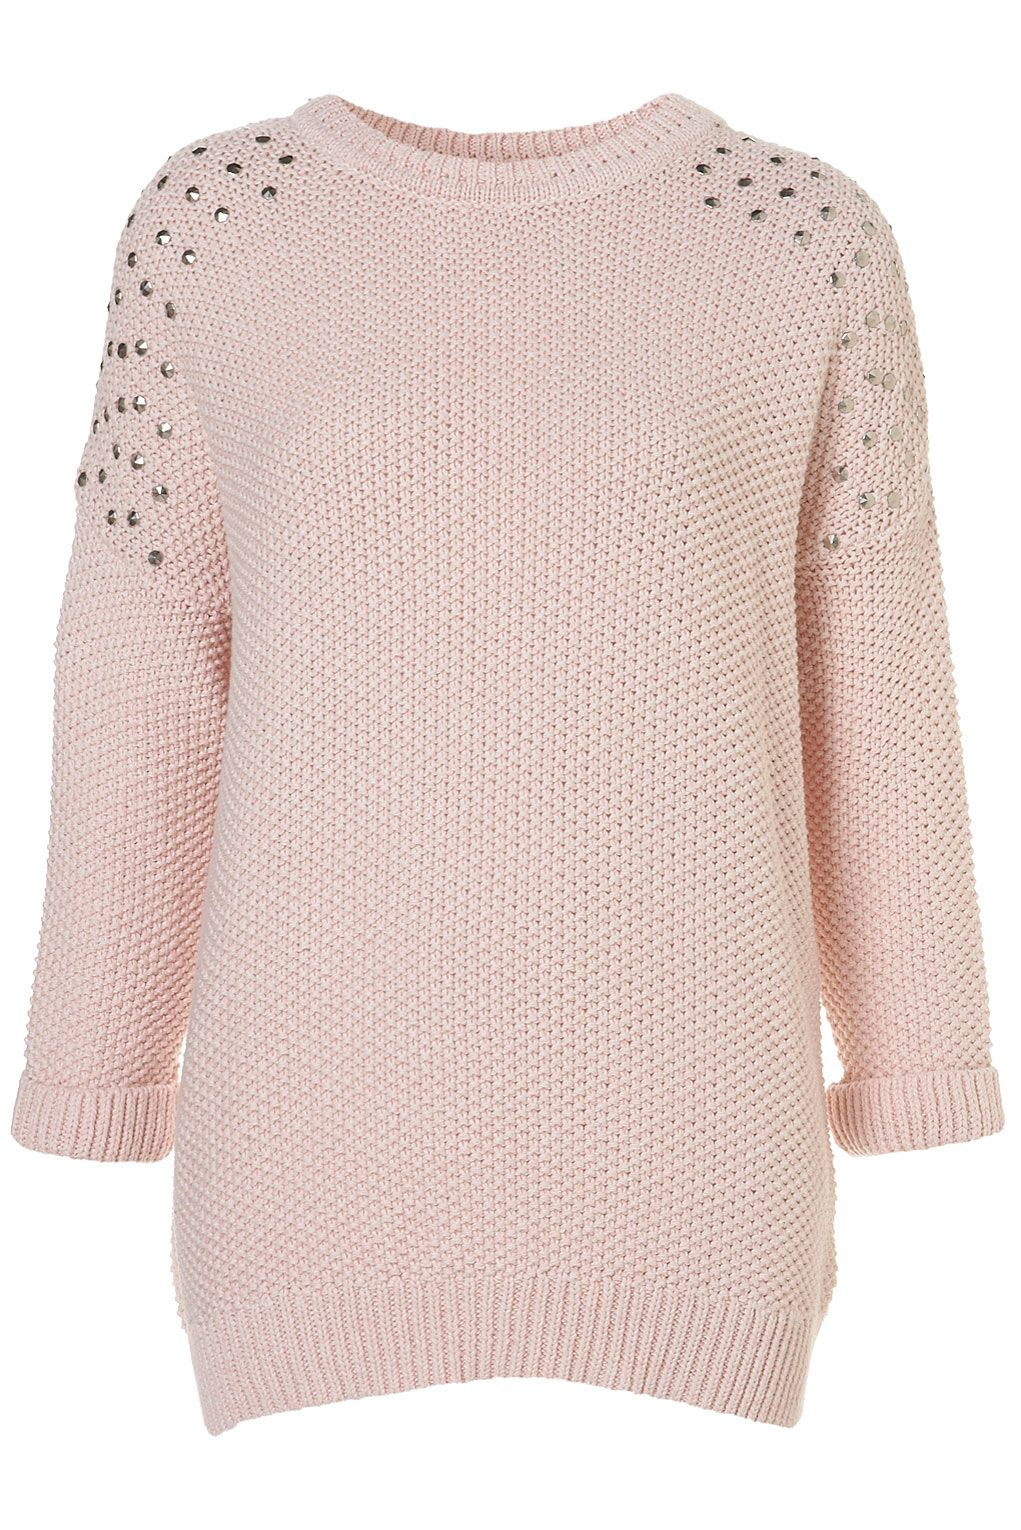 TOPSHOP - Knitted Stud Cotton Jumper  4fd60aefe